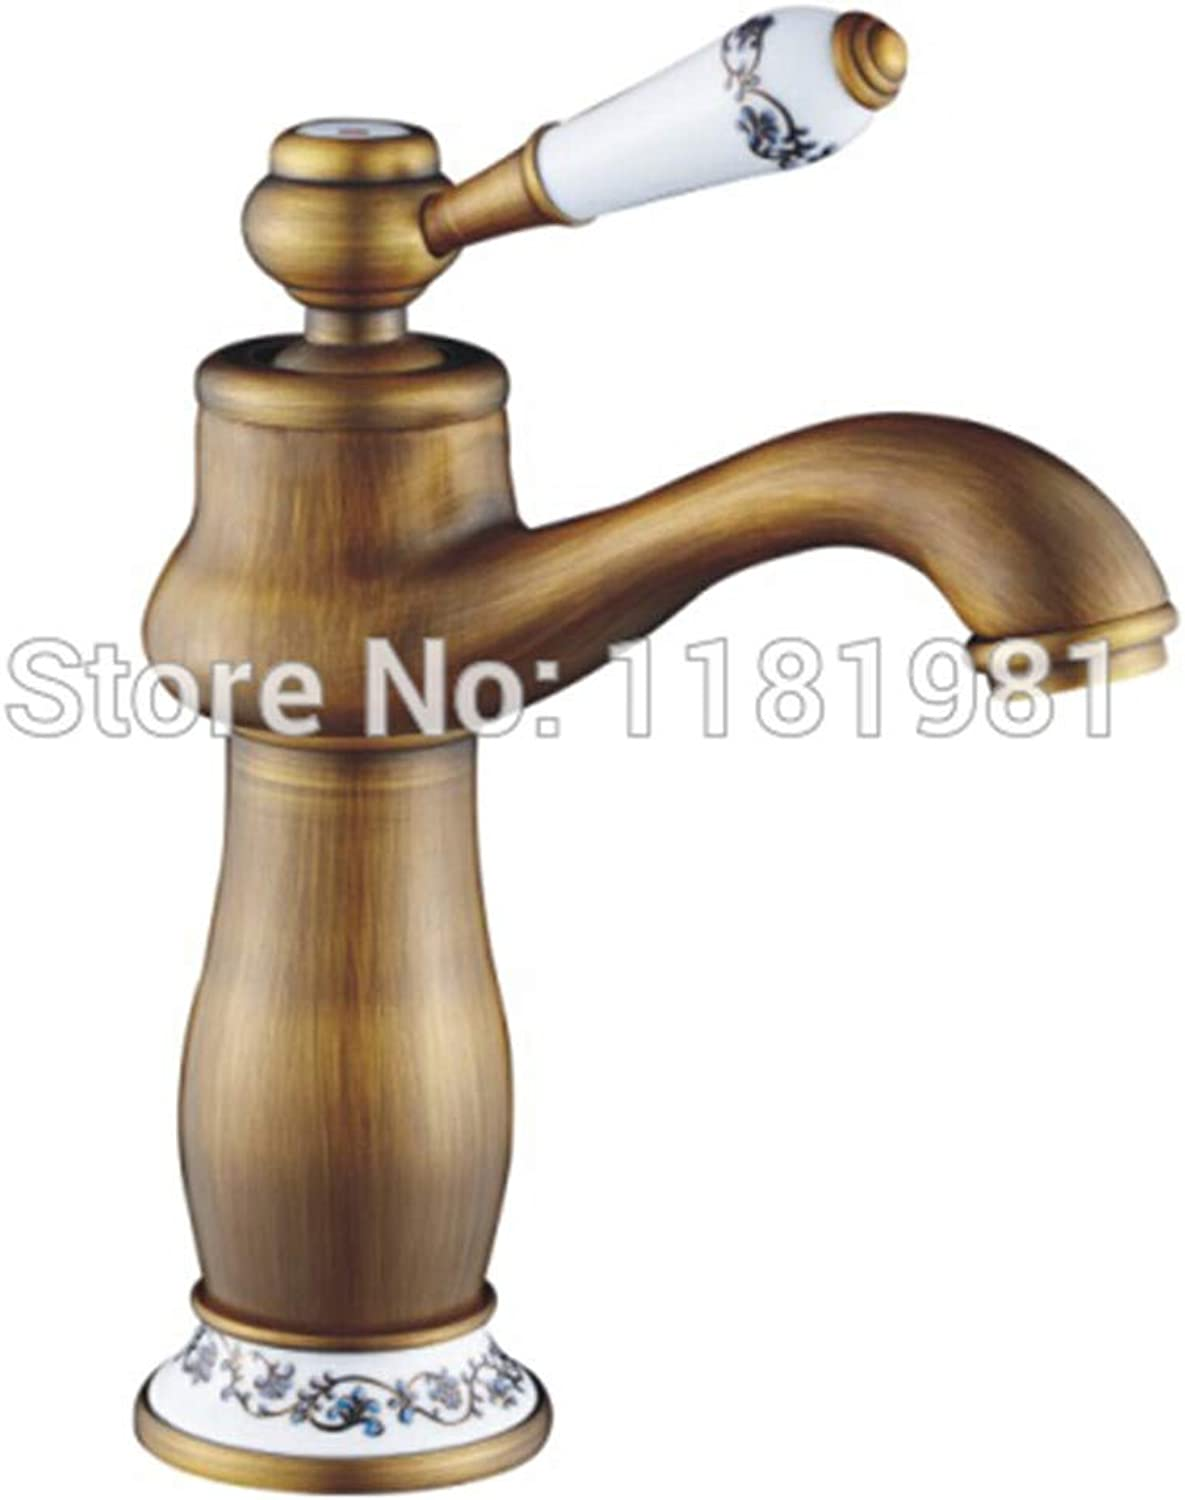 Retro Hot and Cold Faucet Retroeurope Bathroom Antique Brass Antique Single Hole Basin Taps